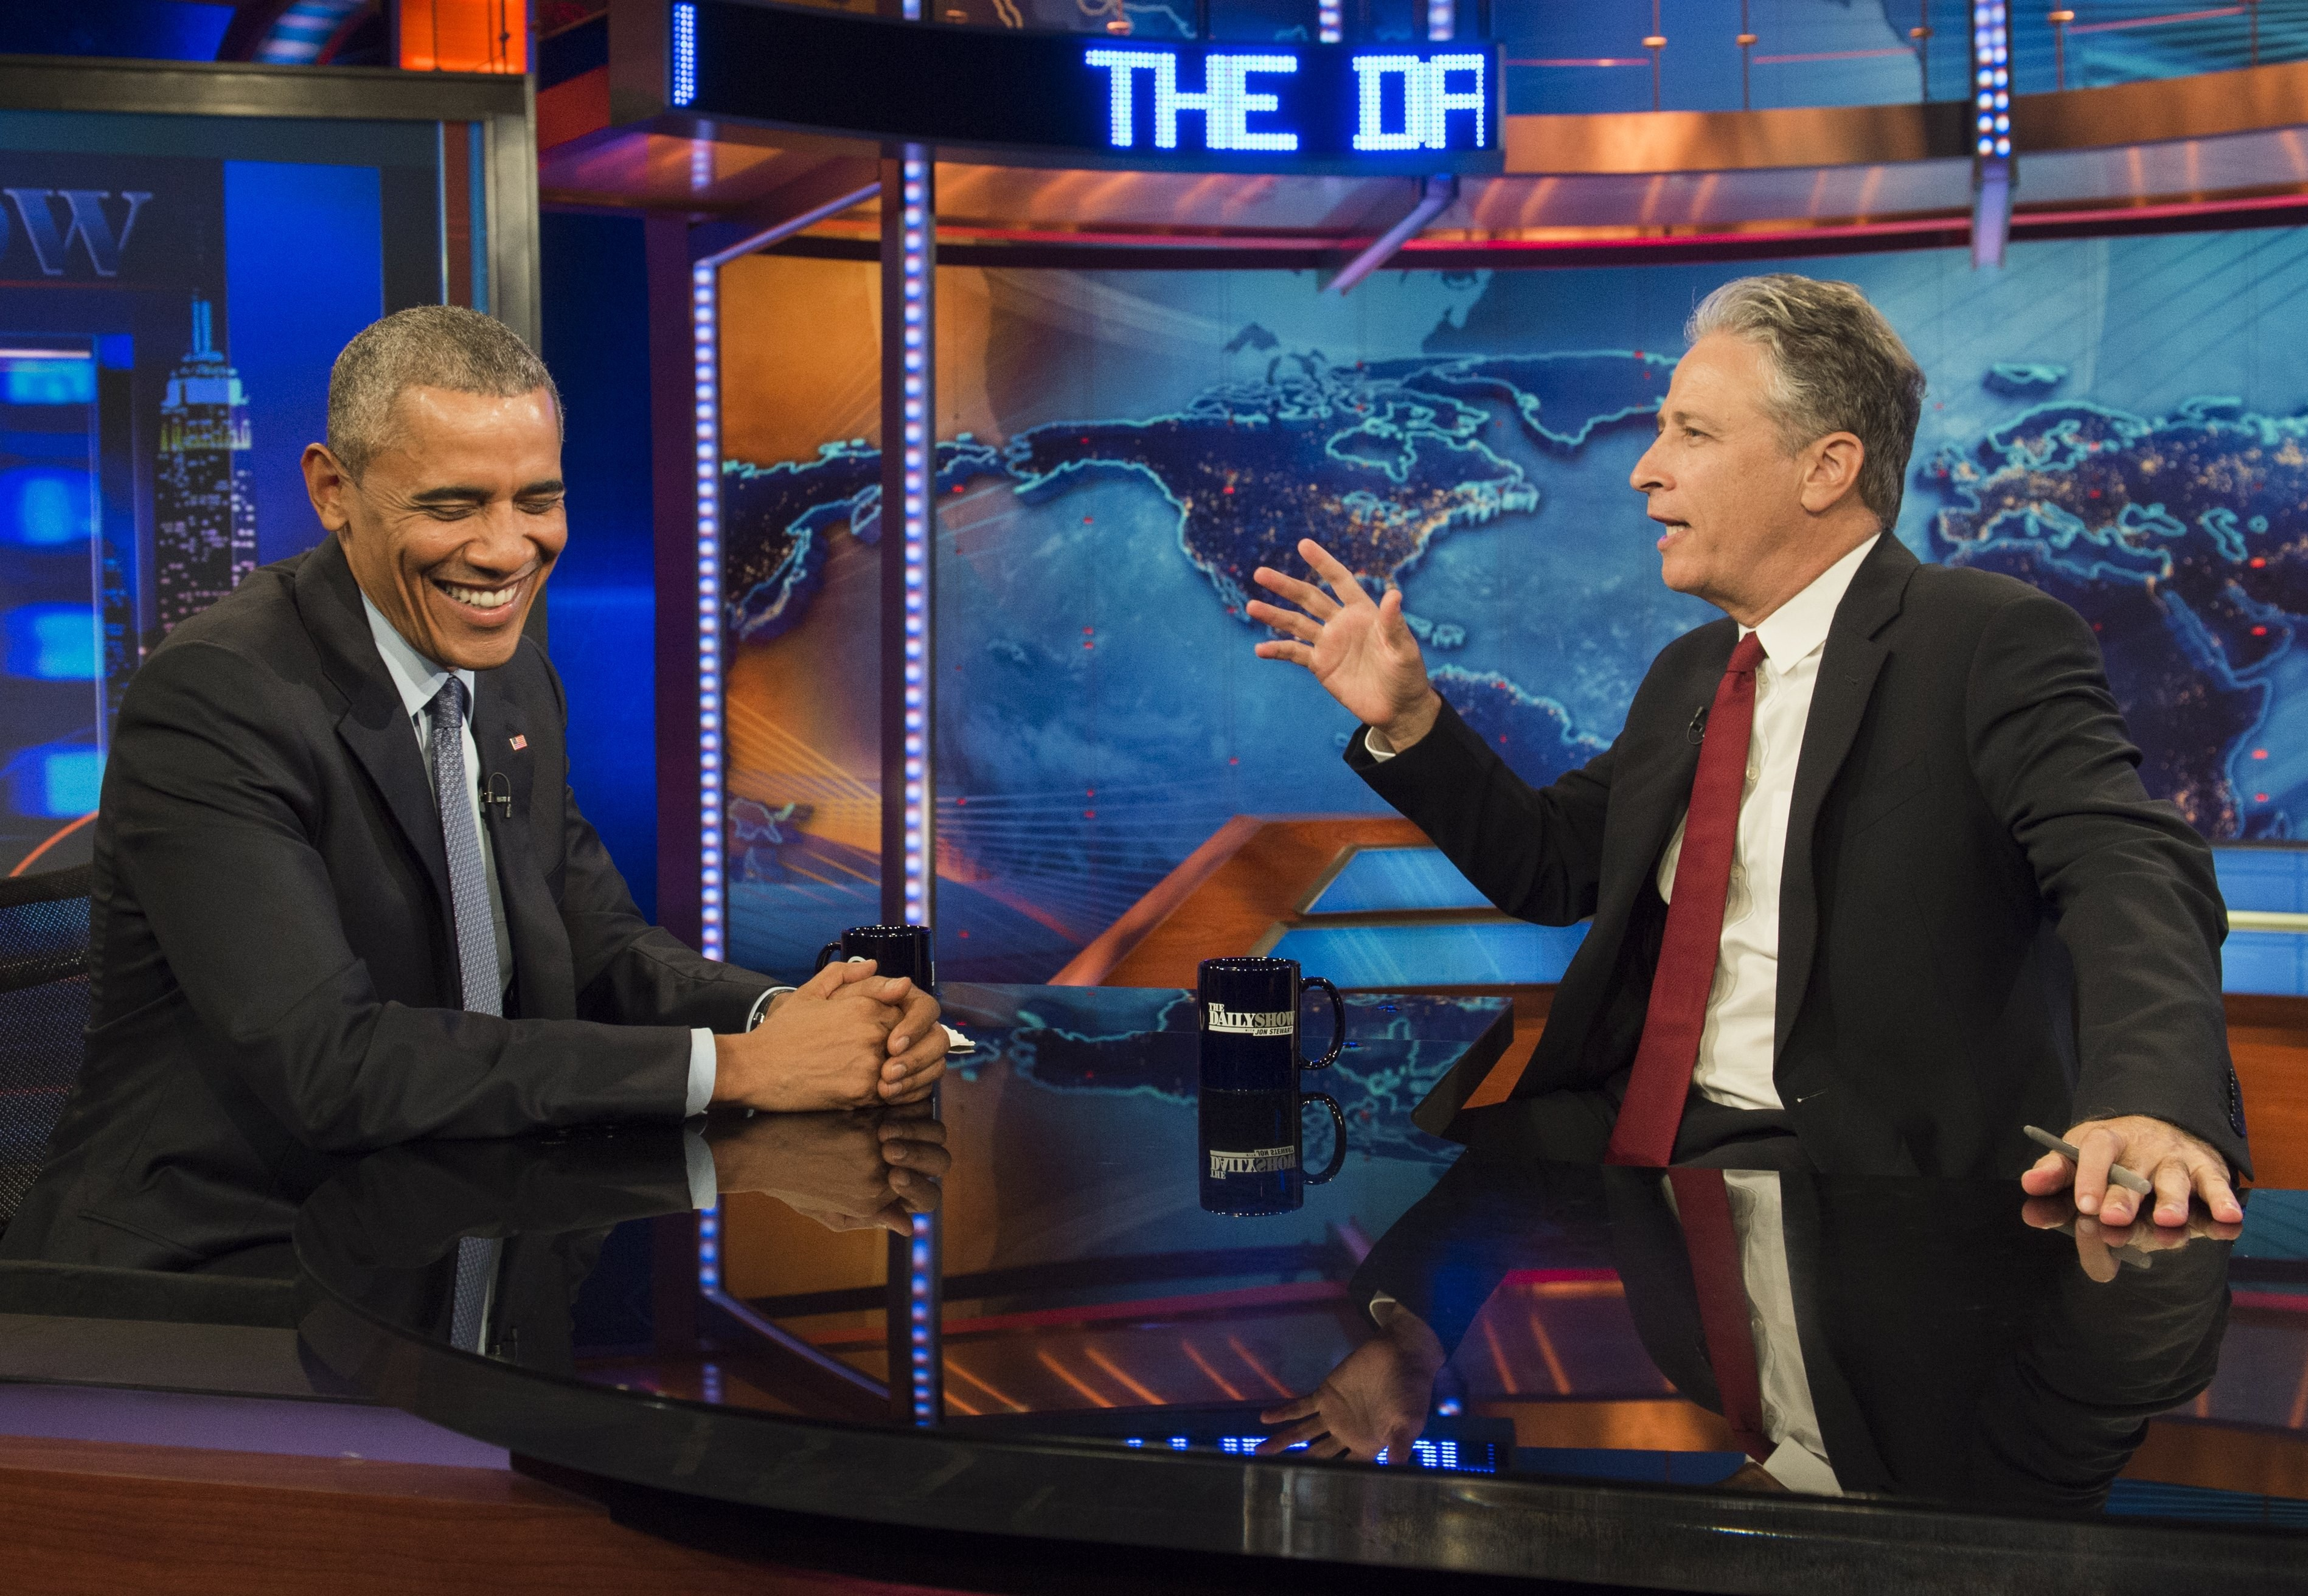 US President Barack Obama speaks with Jon Stewart, host of  The Daily Show with Jon Stewart,  during a taping of the show in New York on July 21, 2015.